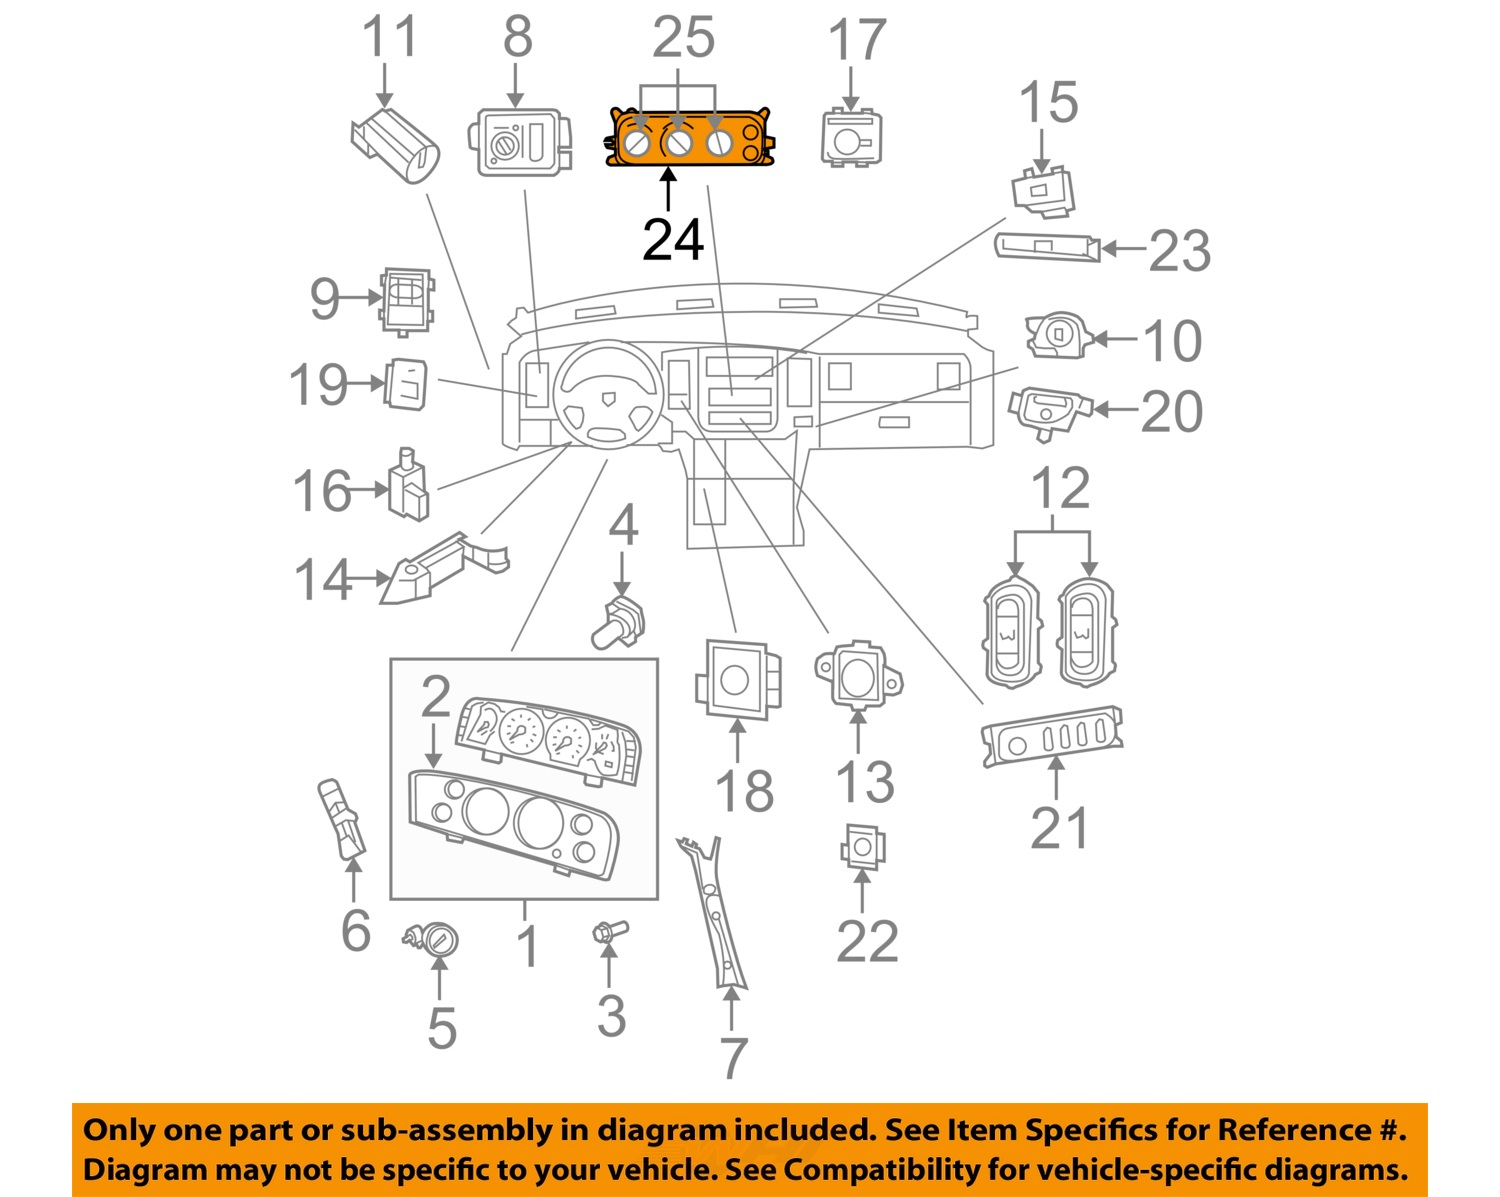 2007 Dodge Ram Dash Diagram Smart Wiring Diagrams \u2022 Road King Dash  2001 Ram Dash Diagram